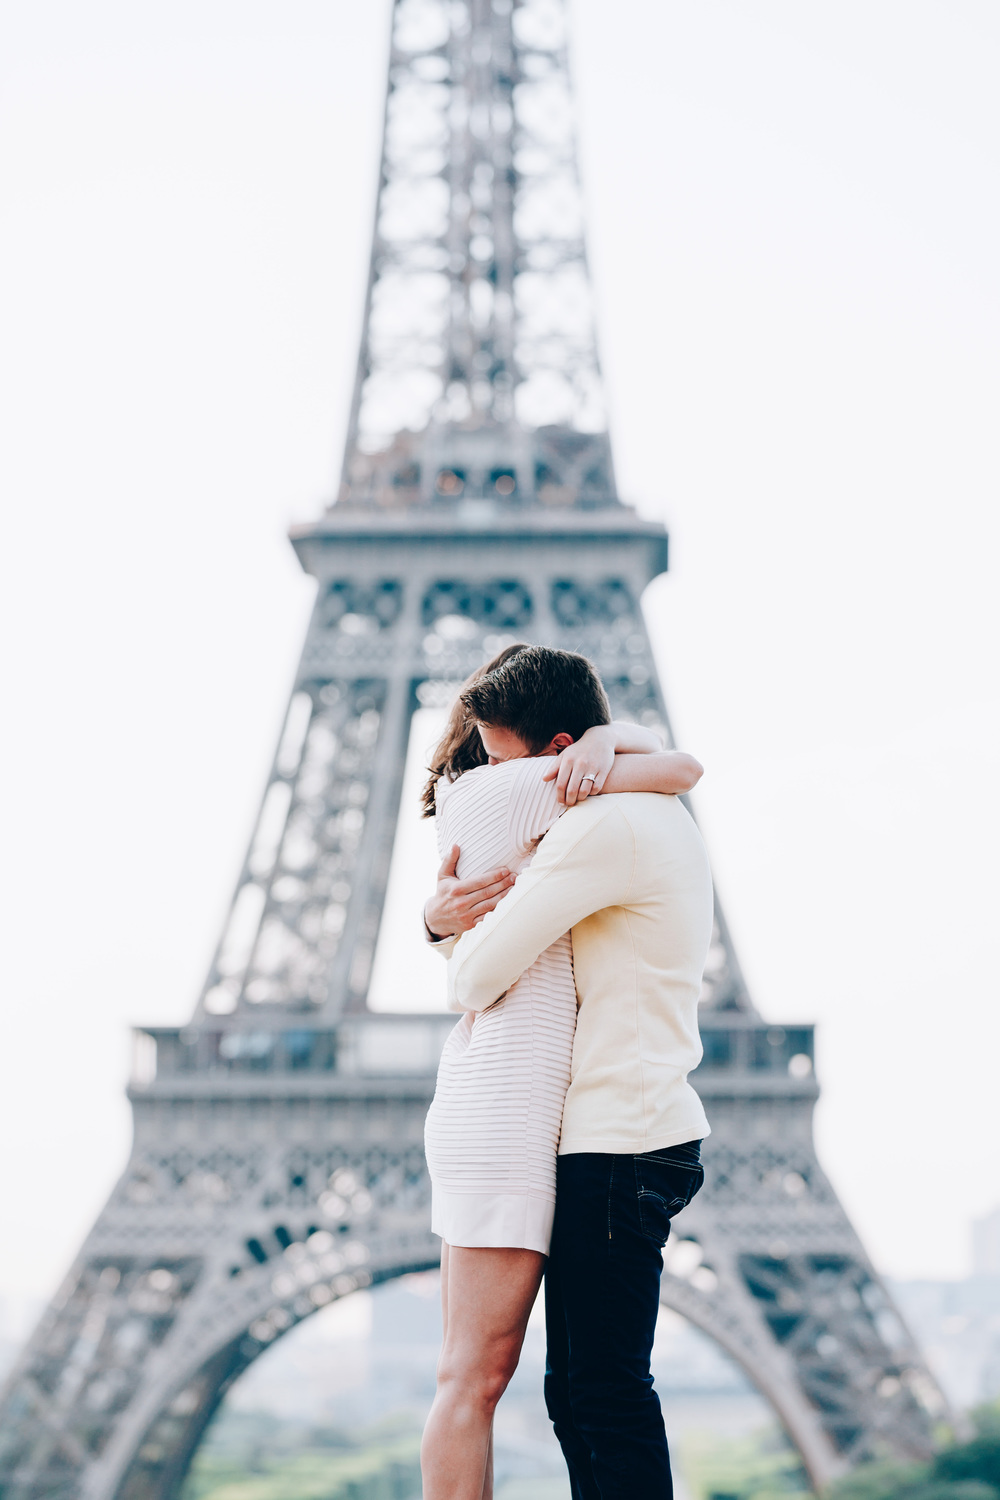 Photographer-in-Paris-Eiffel-Tower-Surprise-Proposal-SheSaidYes-Iheartparisfr.jpg